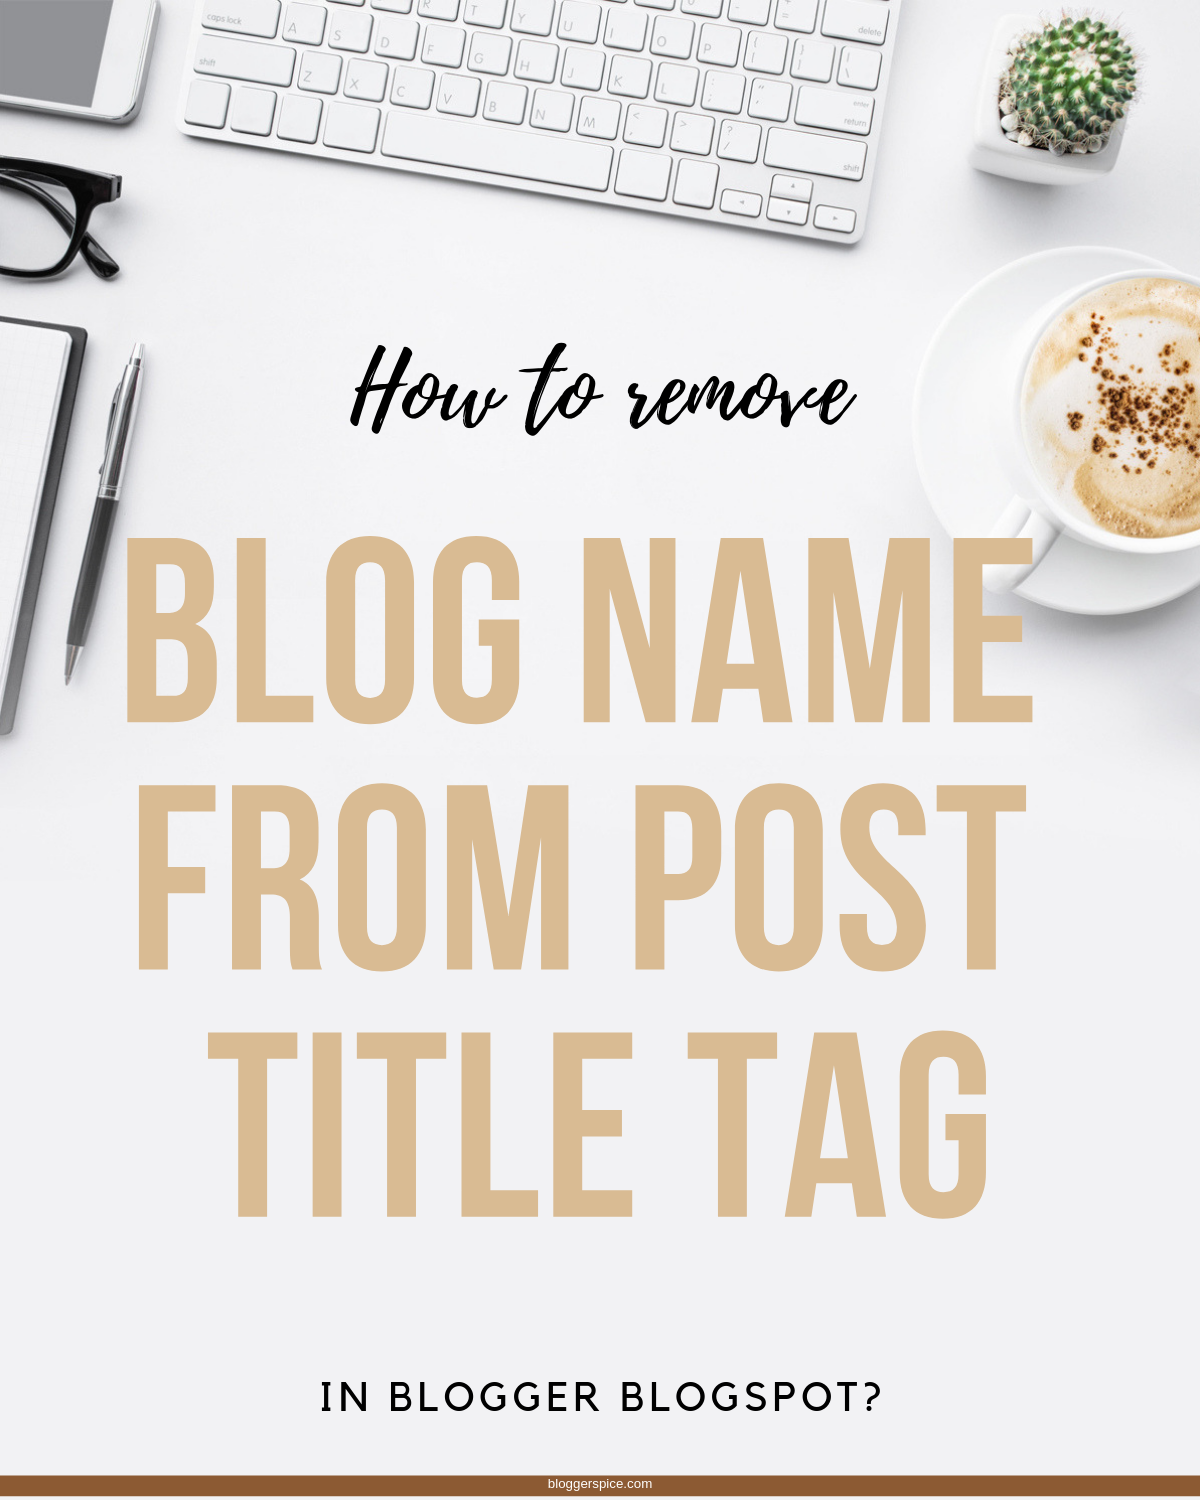 Blogspot Food Blog How To Remove Blog Name From Post Title Tag In Blogger Blogspot